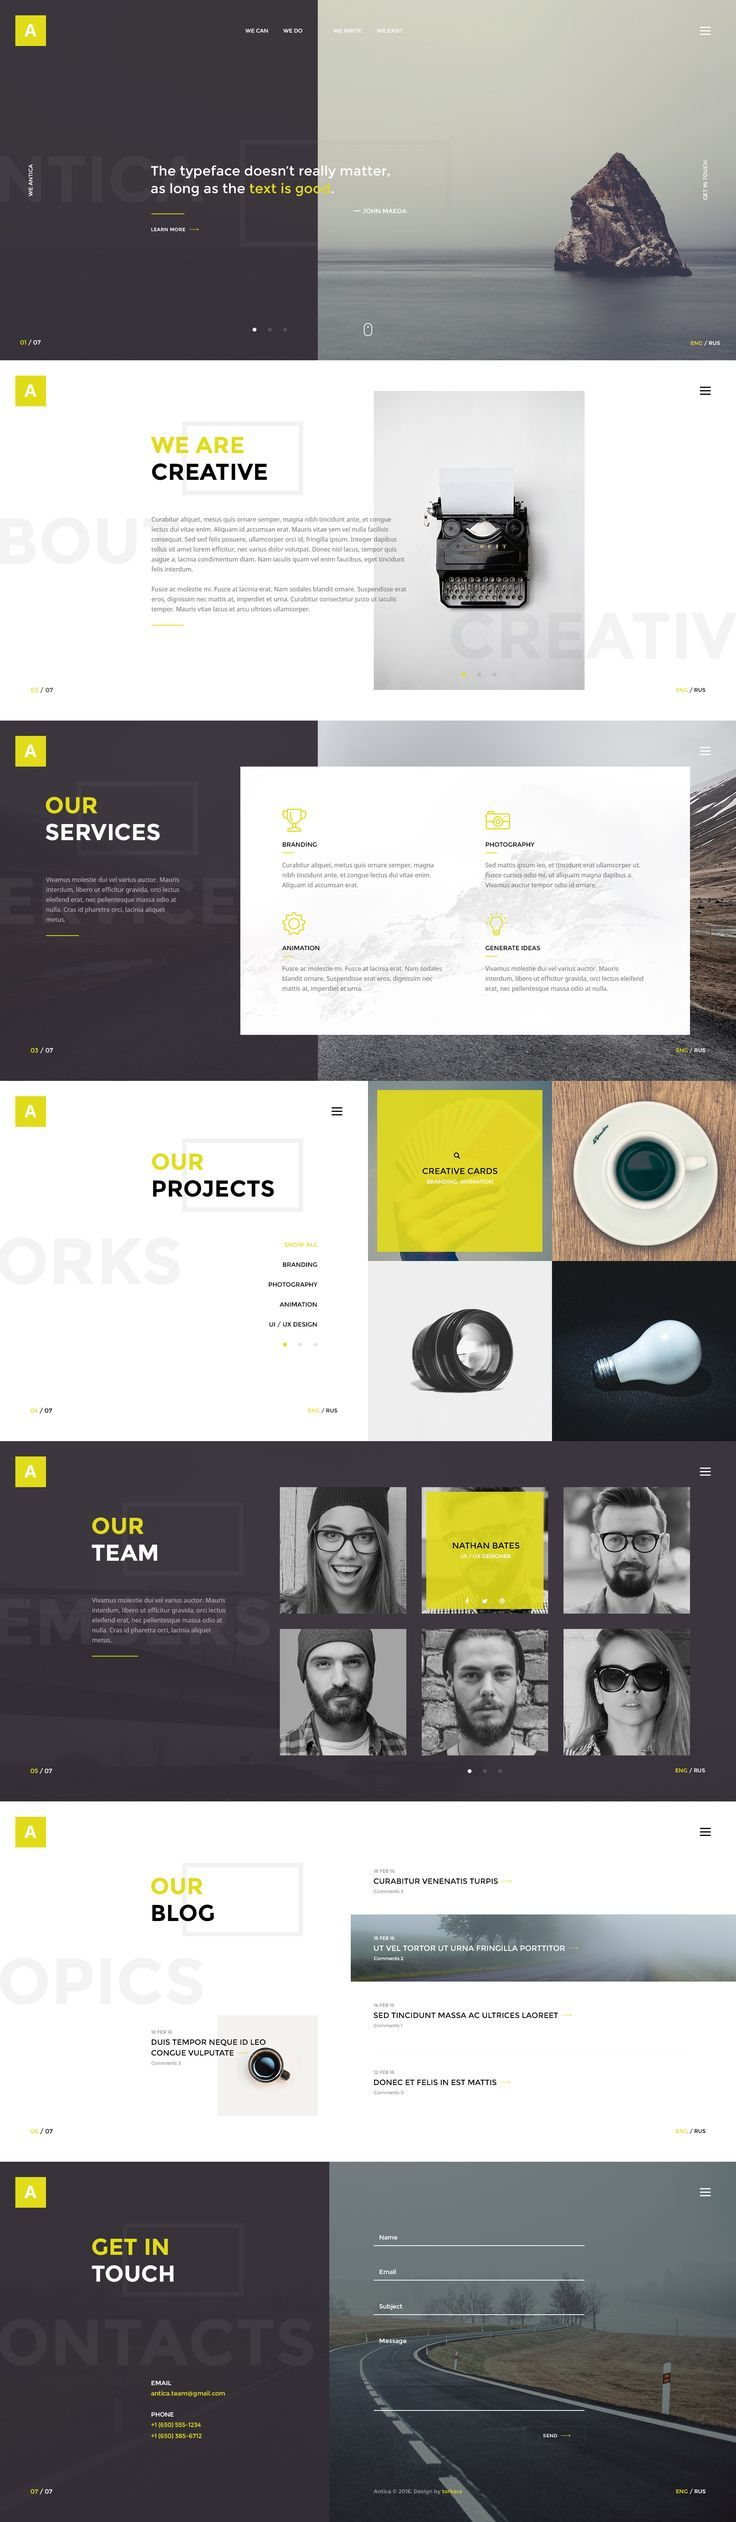 Best 25+ Web design ideas on Pinterest | Website layout, Layout ...